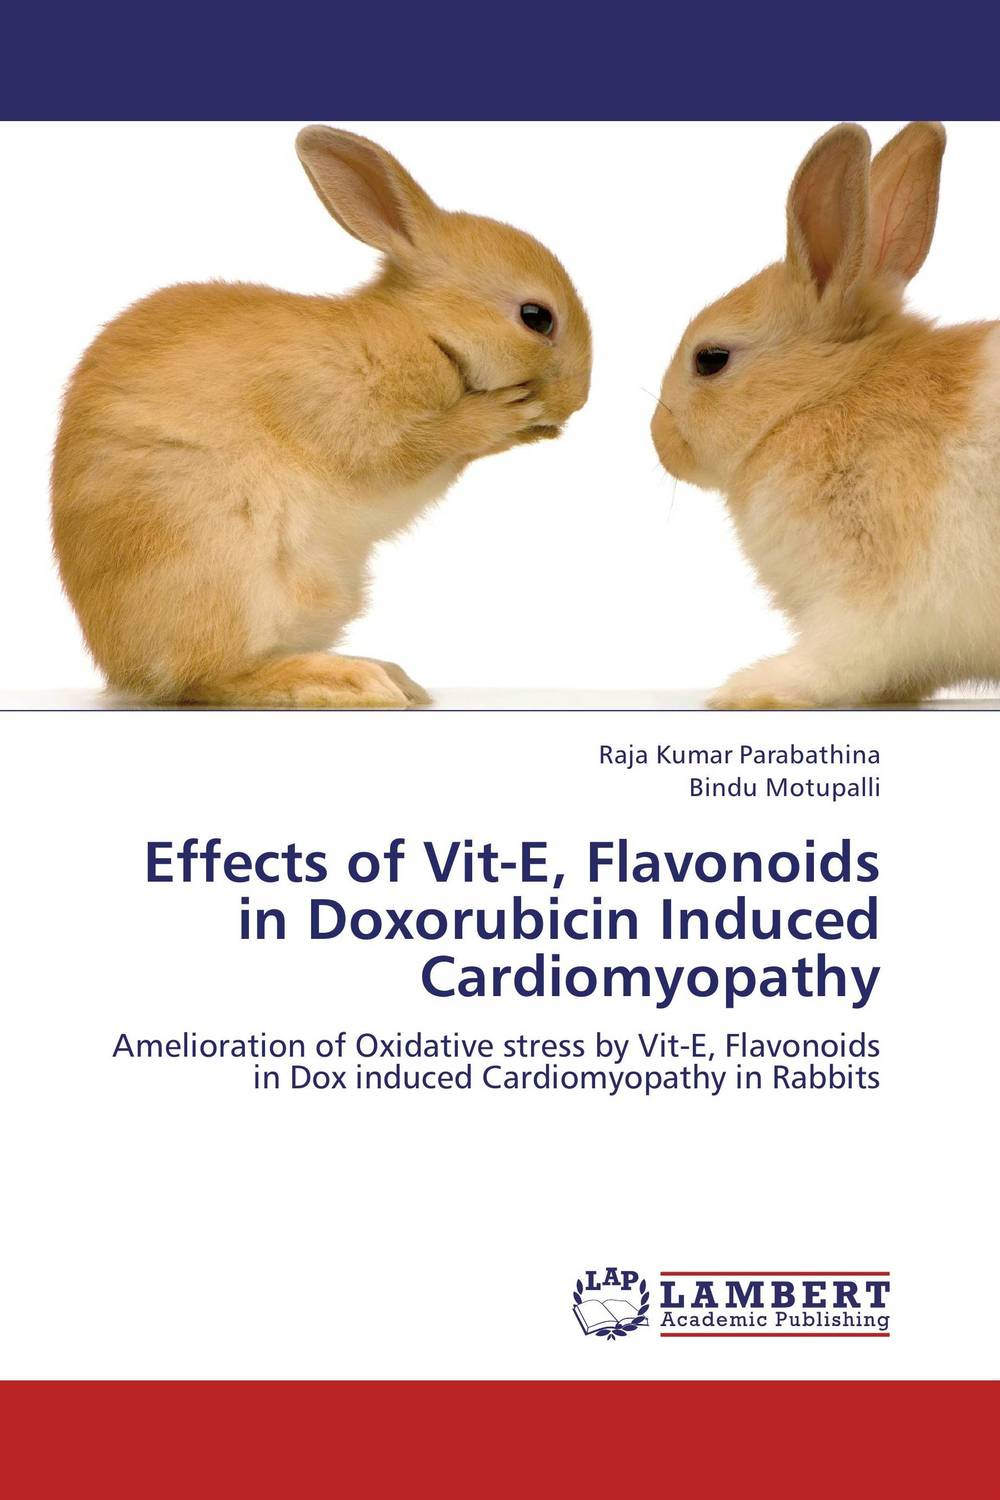 Effects of Vit-E, Flavonoids in Doxorubicin Induced Cardiomyopathy бра lussole lgo 23 lsp 0186